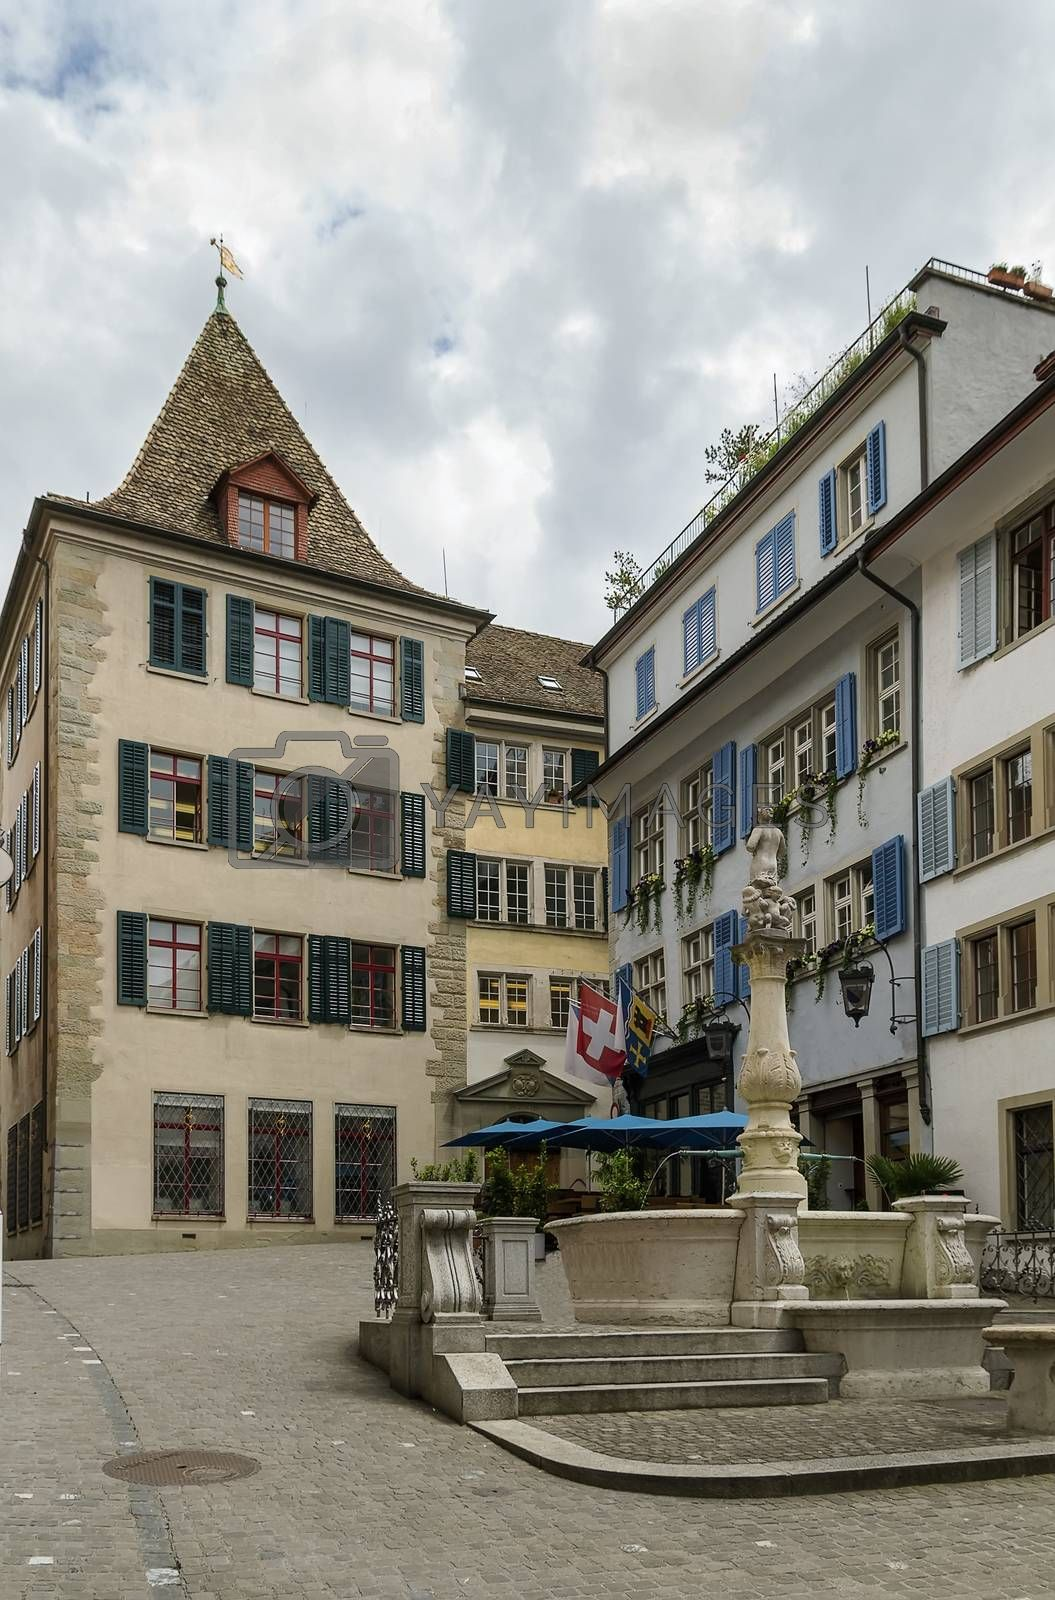 Small square in Zurich by borisb17